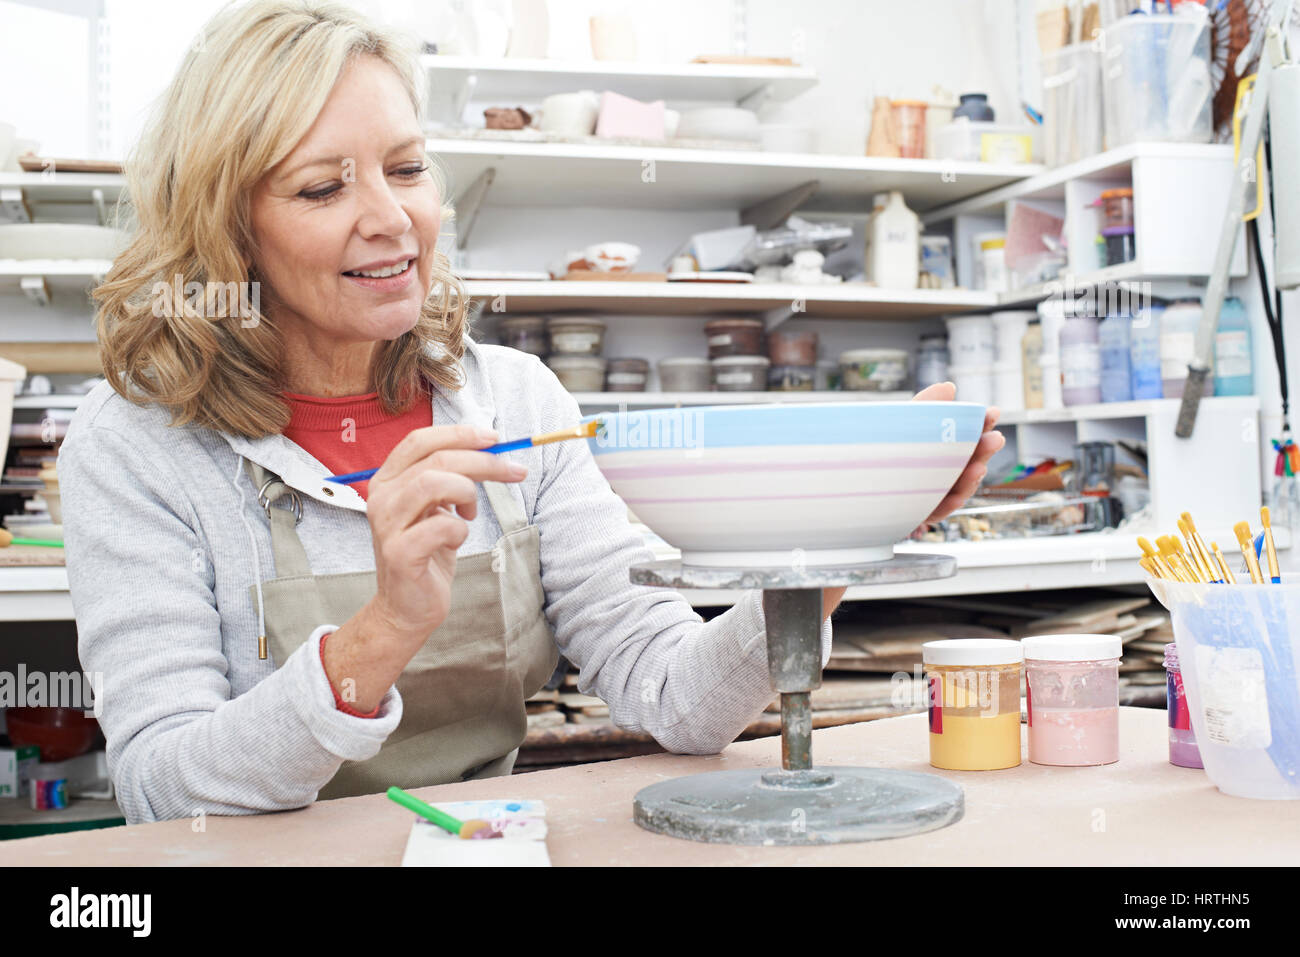 Mature Woman Decorating Bowl In Pottery Class - Stock Image